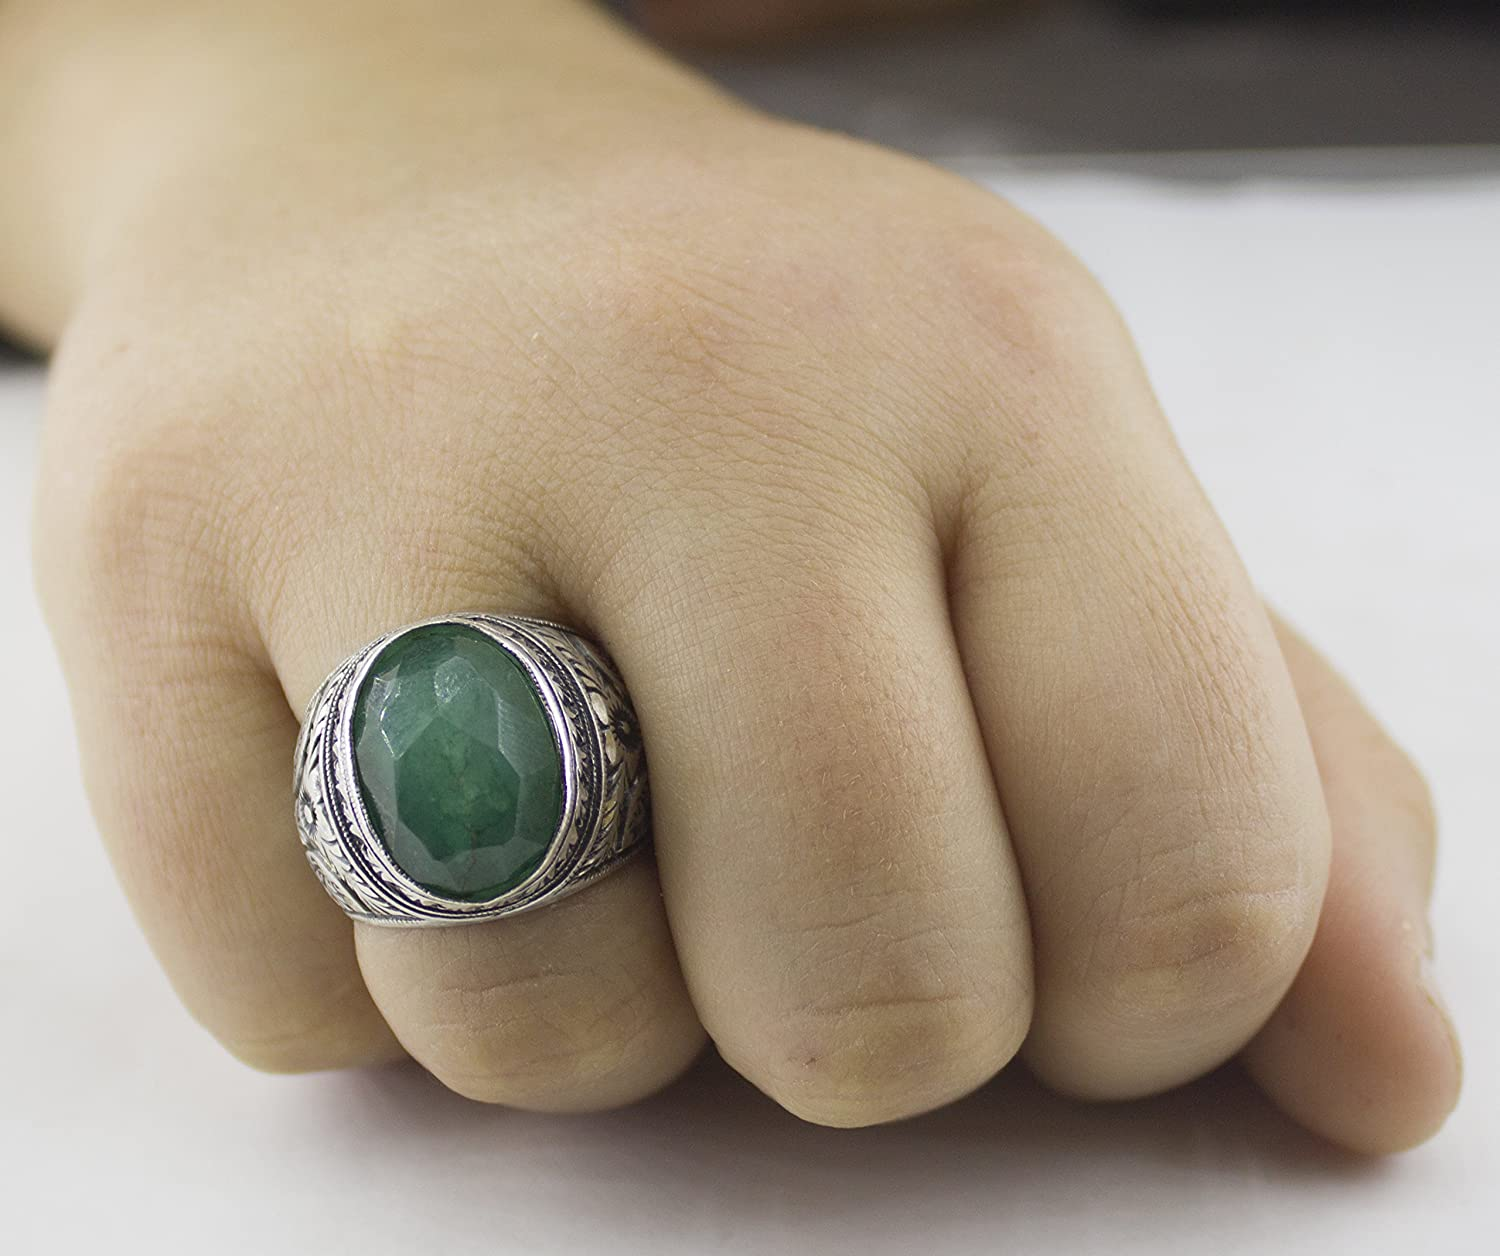 Emerald Natural Gemstone Falcon Jewelry Sterling Silver Men Ring Handmade Steel Pen Crafts